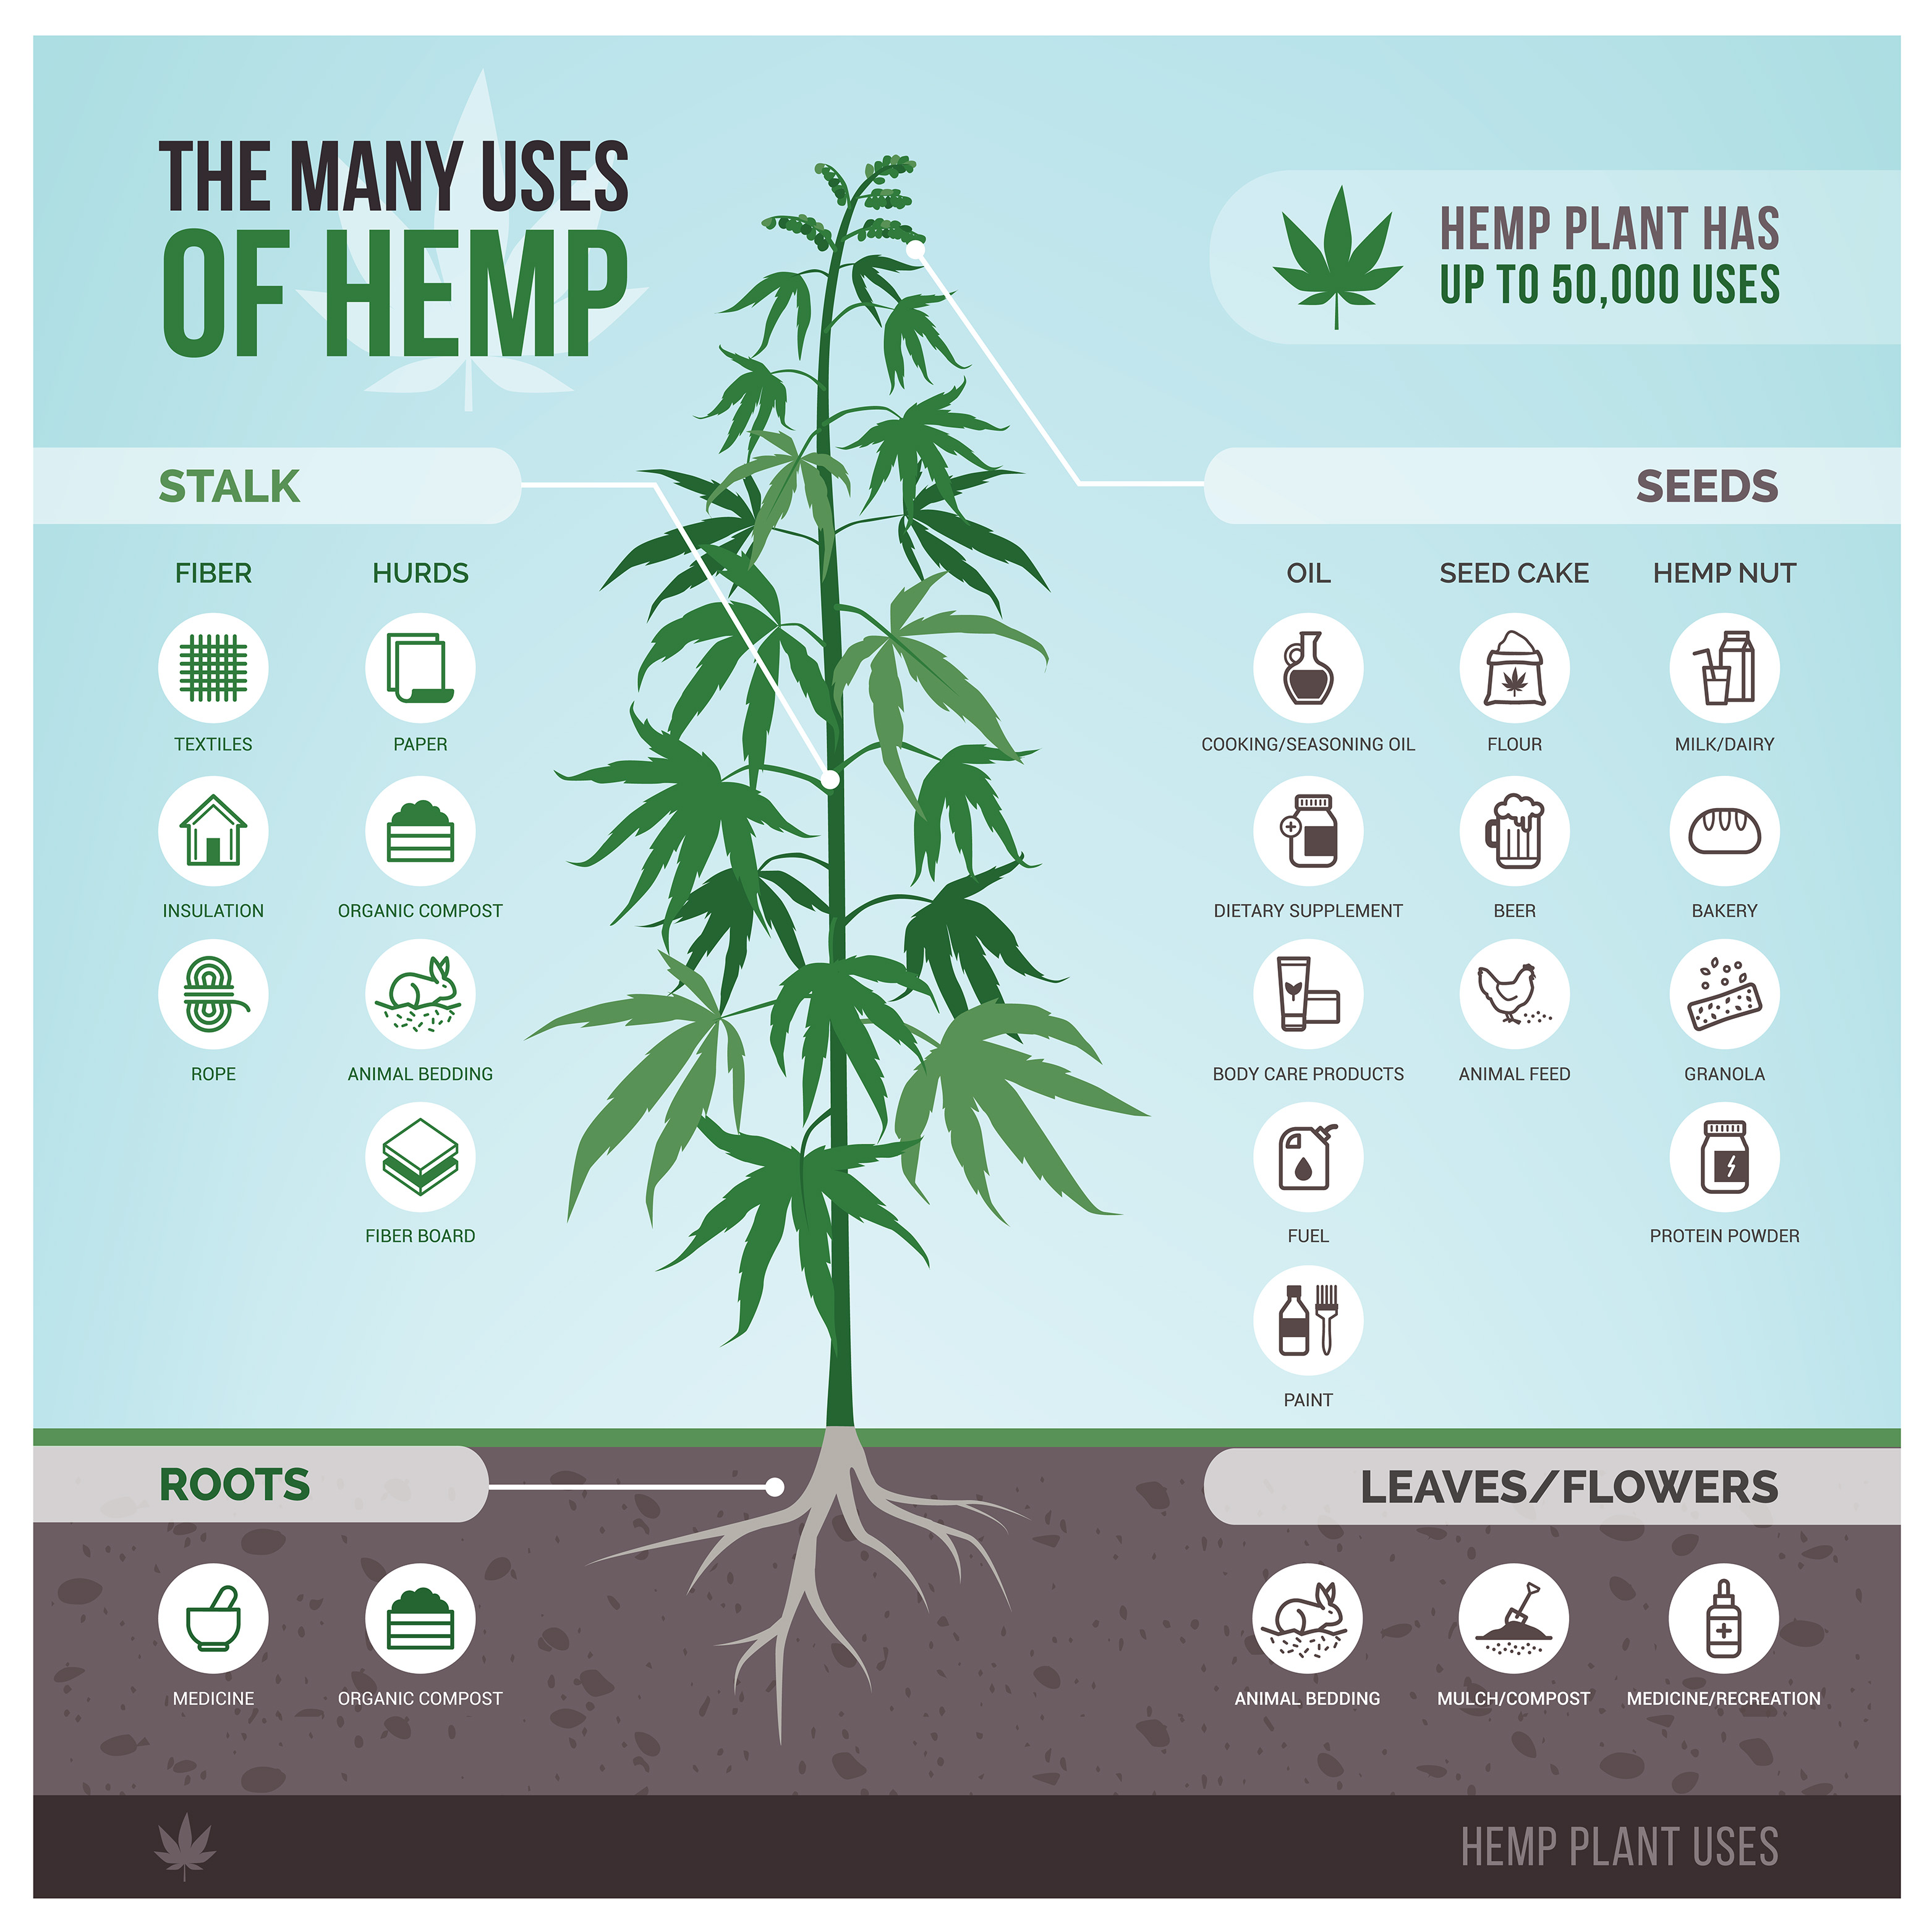 legalization of industrial hemp Senate majority leader mitch mcconnell says he plans to introduce legislation to legalize hemp as an agricultural commodity, a familiar move that could help pave the way for more growth in his.